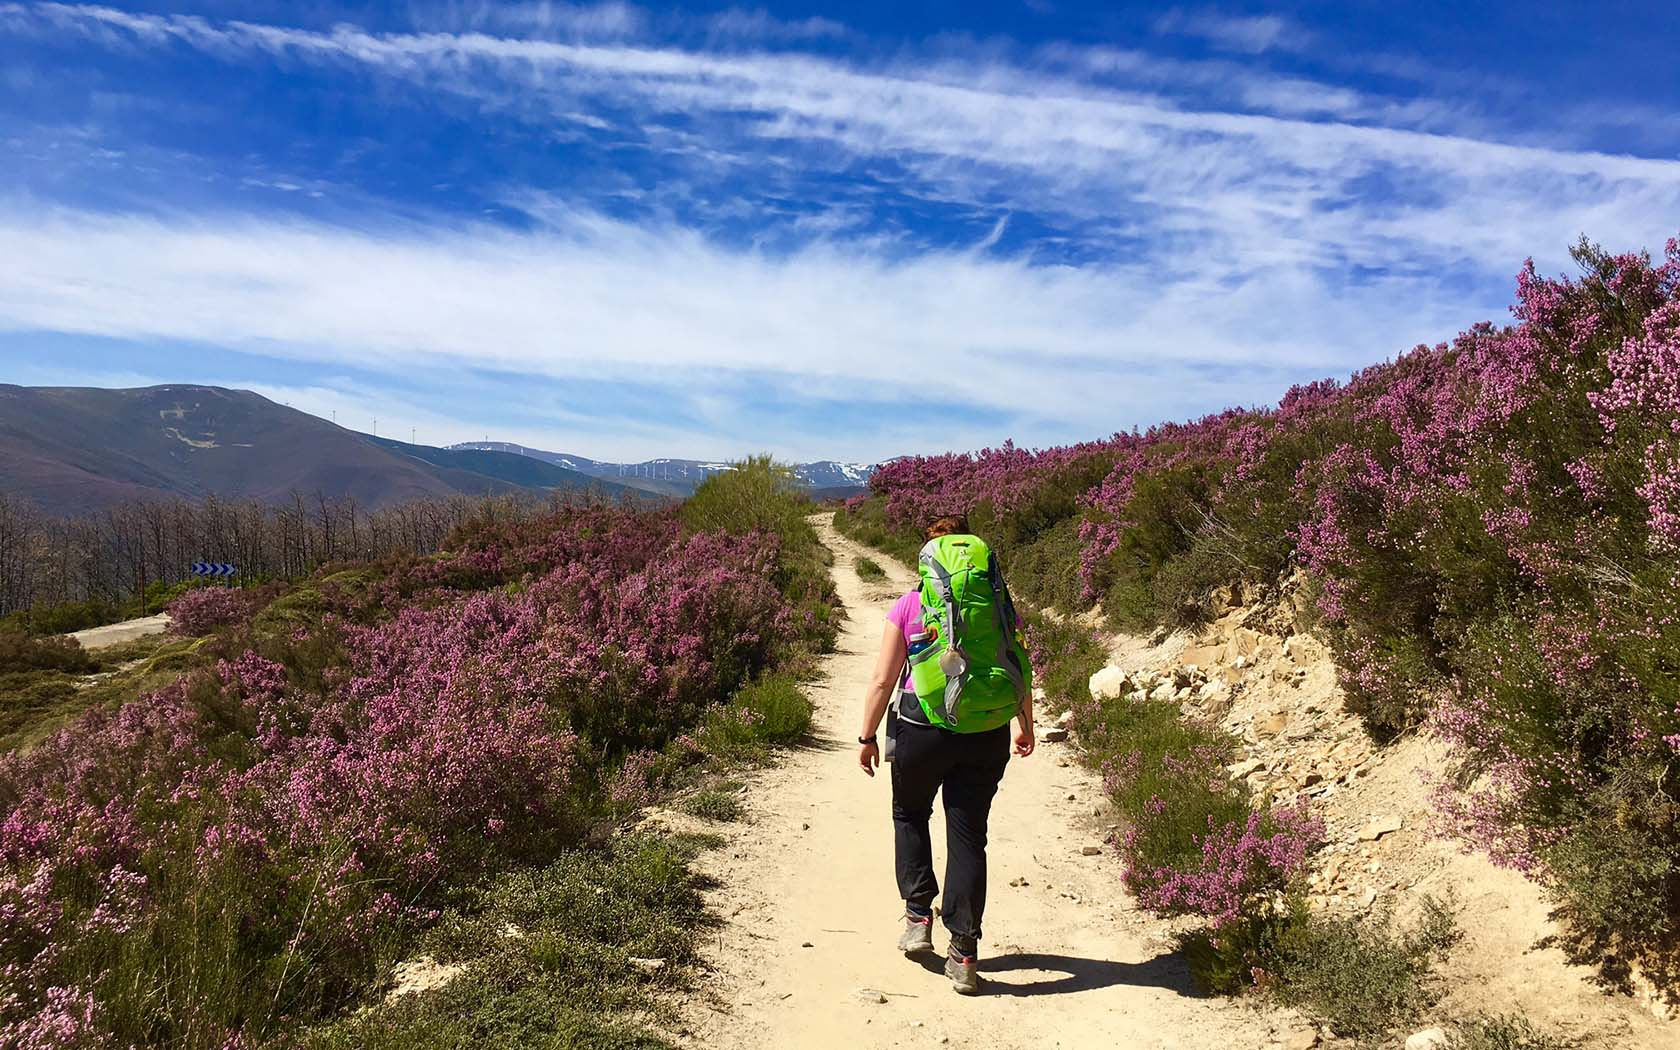 5 Things To Know Before Hiking Spain's Camino De Santiago